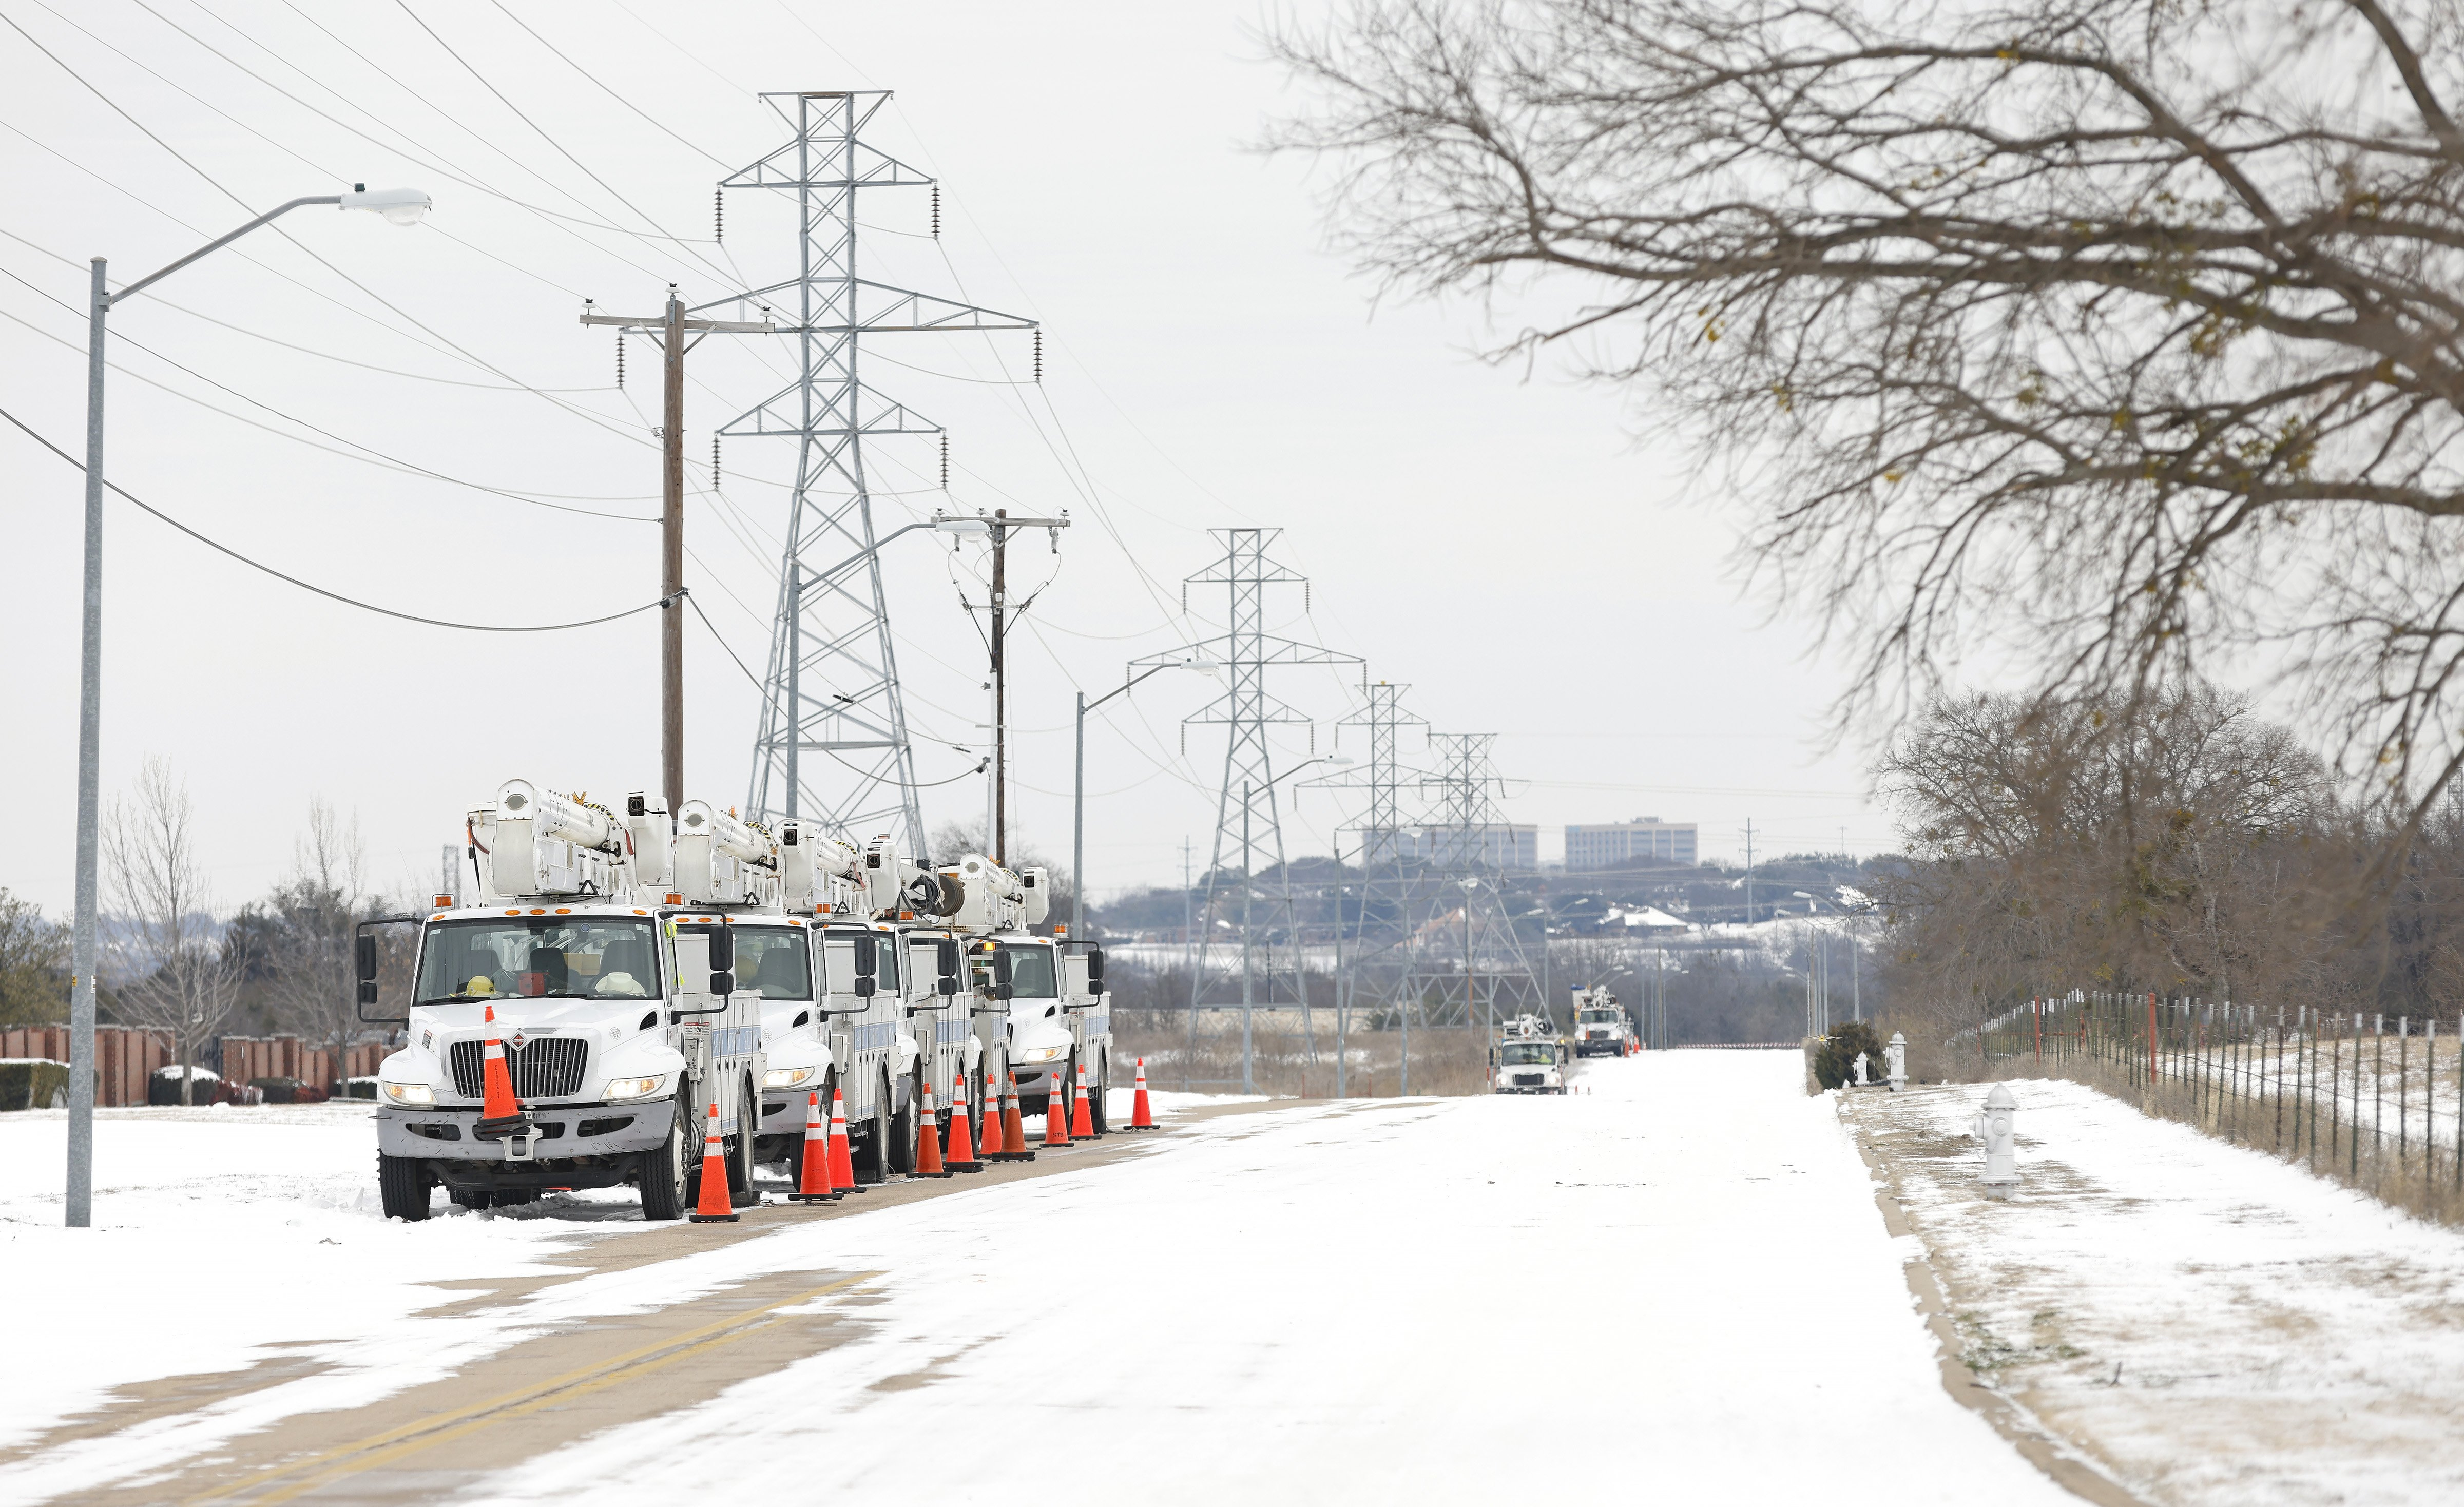 Pike Electric service trucks line up after the Uri snowstorm on February 16, 2021 | Photo: Getty Images